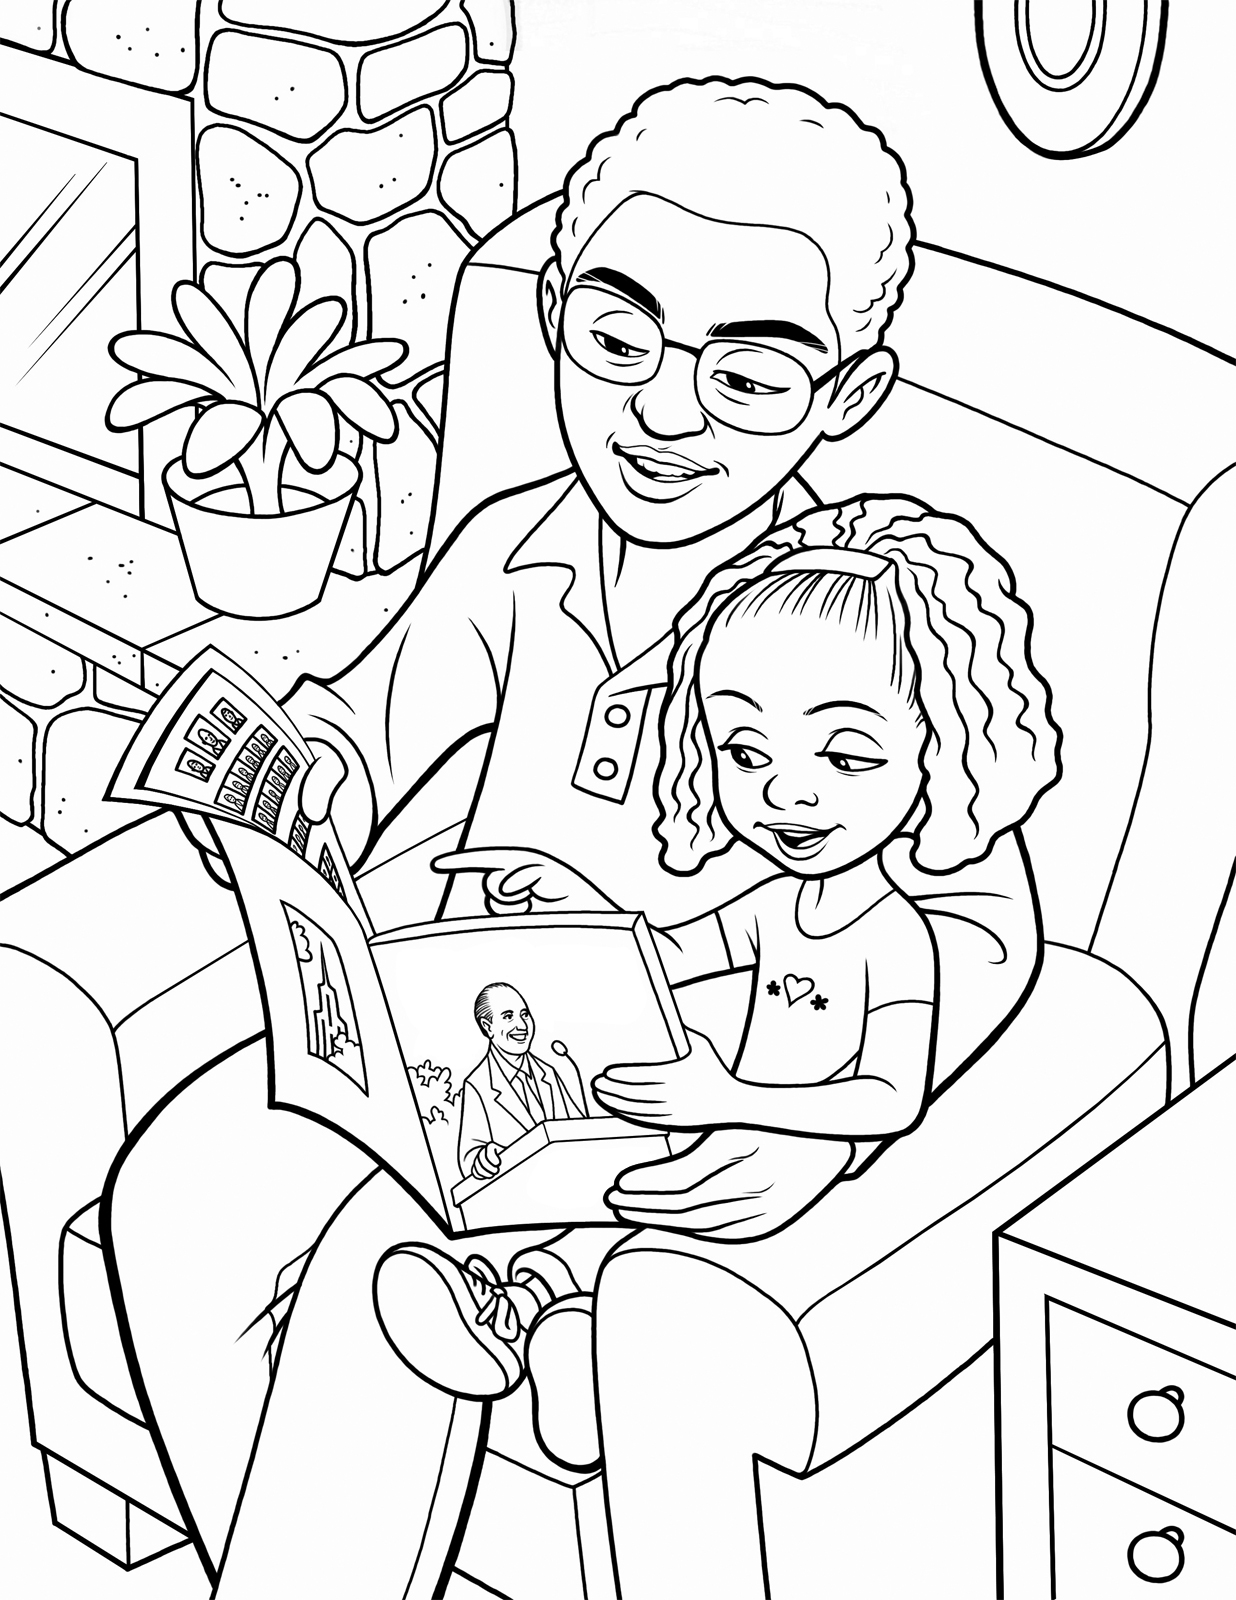 father and daughter coloring pages faerlmarie coloring pages 34 dad and daughter coloring pages coloring pages daughter and father